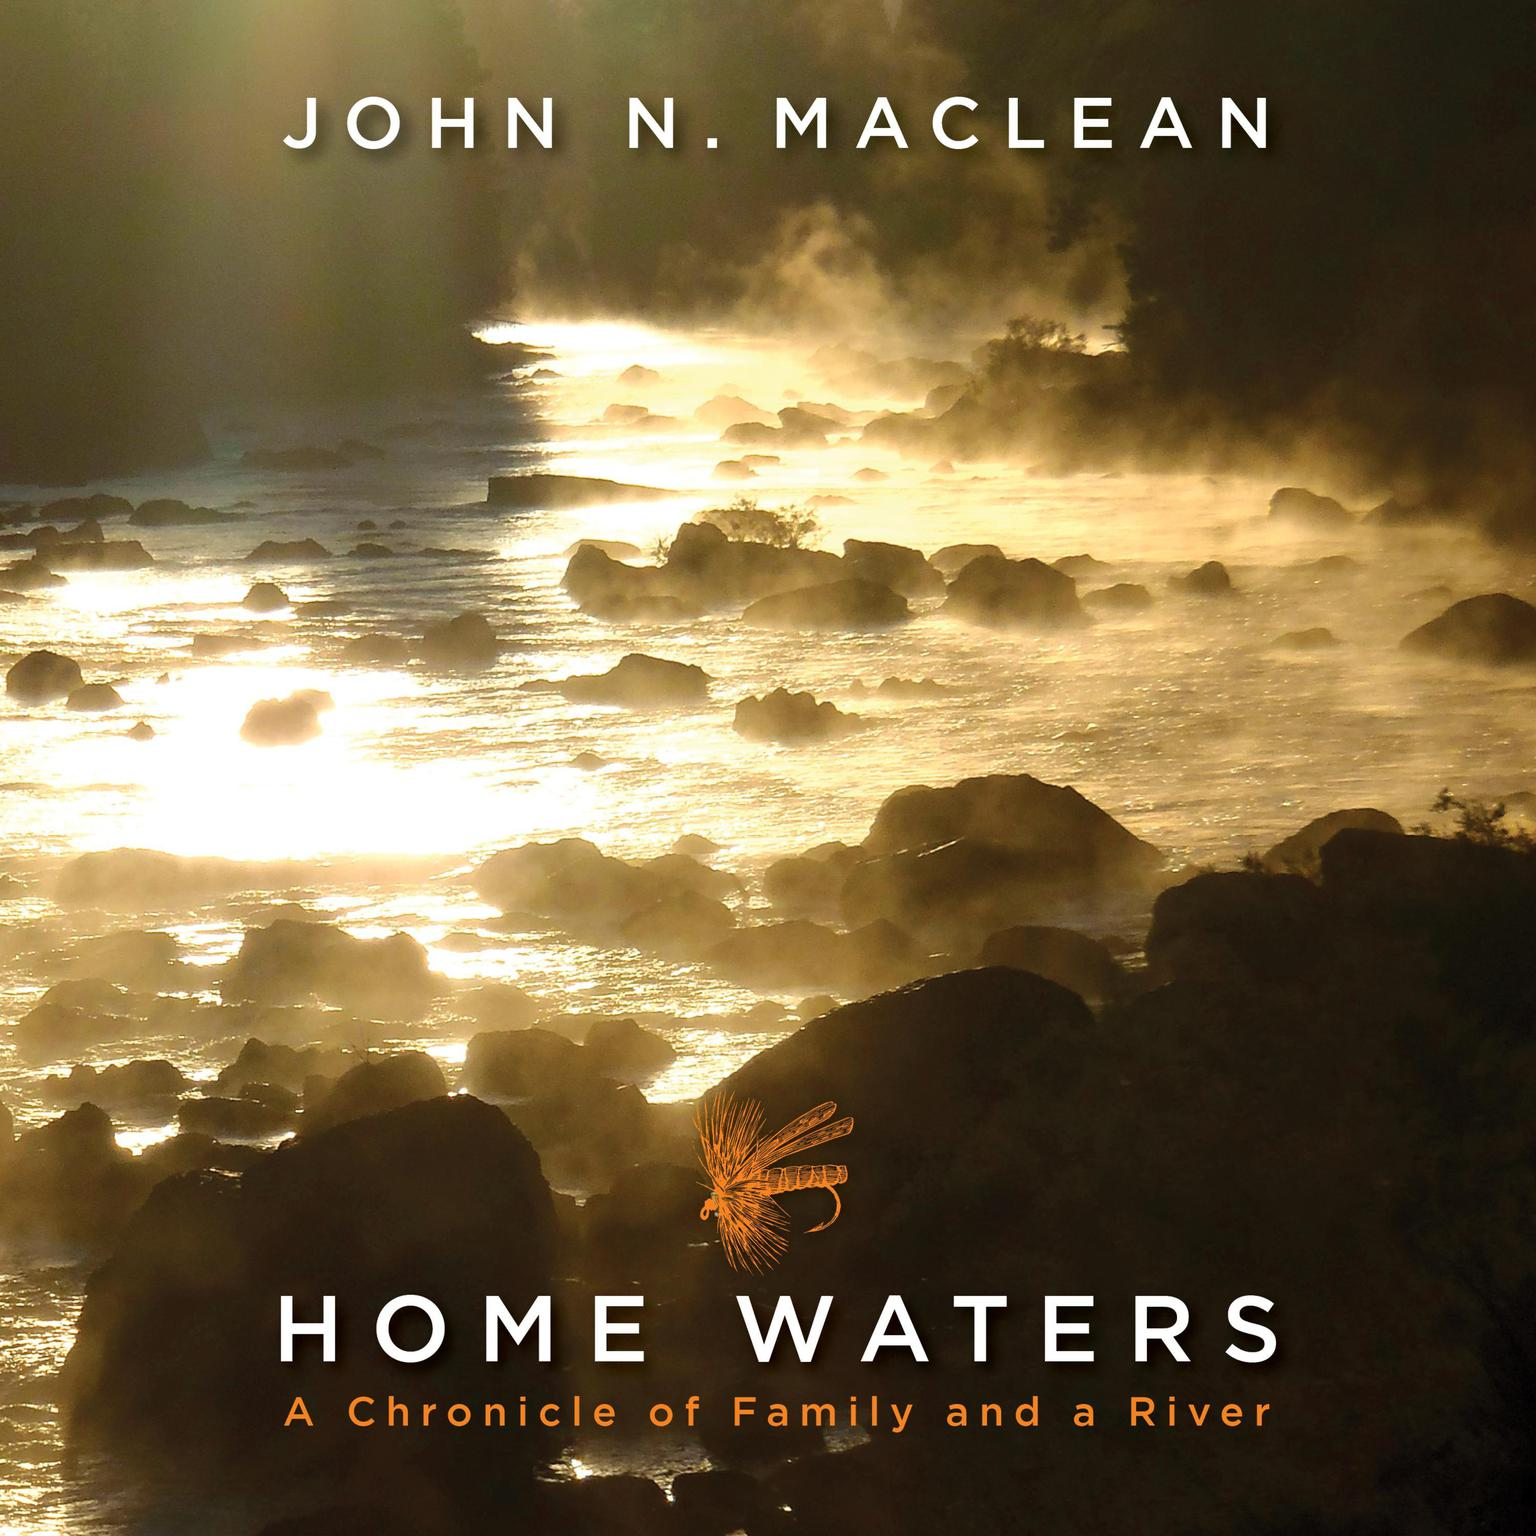 Home Waters: A Chronicle of Family and a River Audiobook, by John N. Maclean